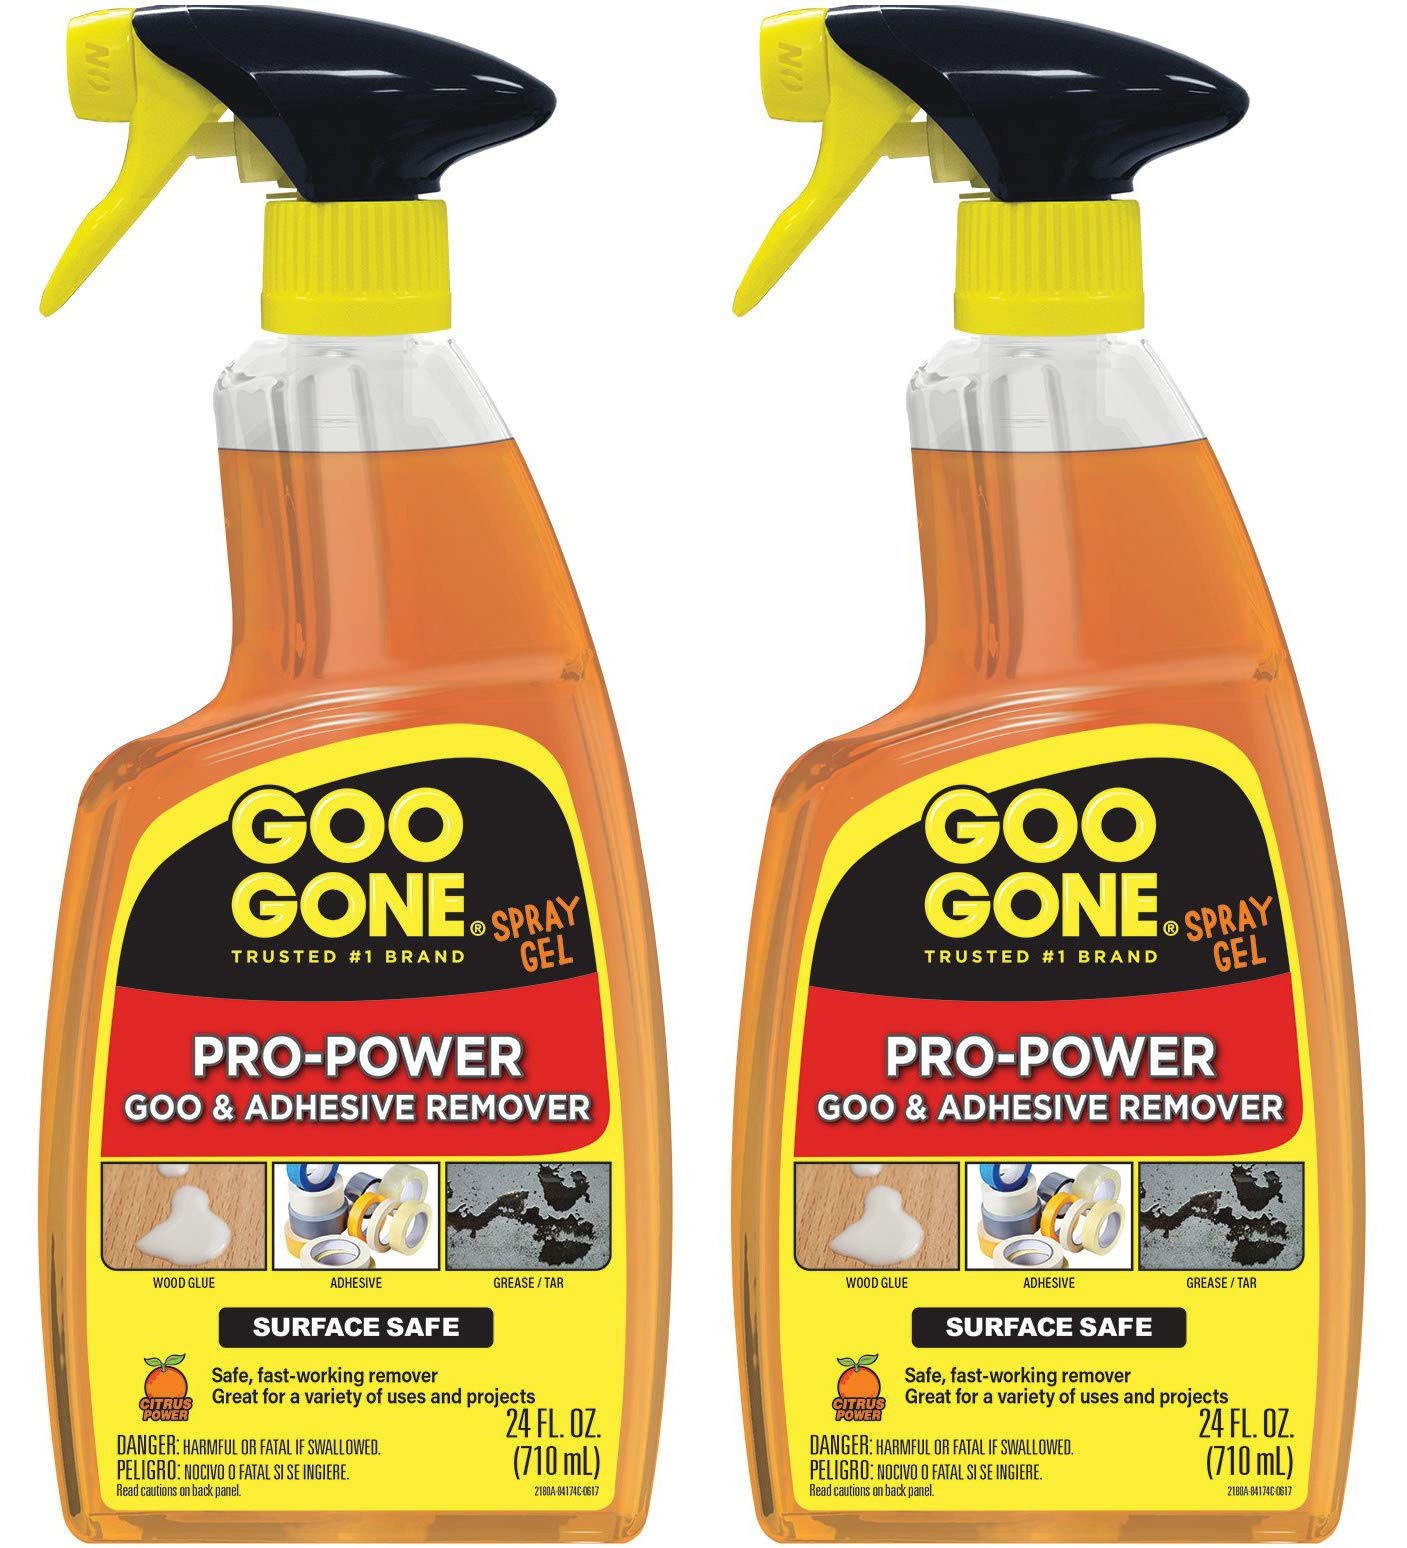 Goo Gone IUGYH Pro-Power Spray Gel - 24 Ounce - Surface Safe, Great Cleaner, No Harsh Odors, Removes Stickers, Can Be Used On Tools 2 Pack by Goo Gone (Image #1)